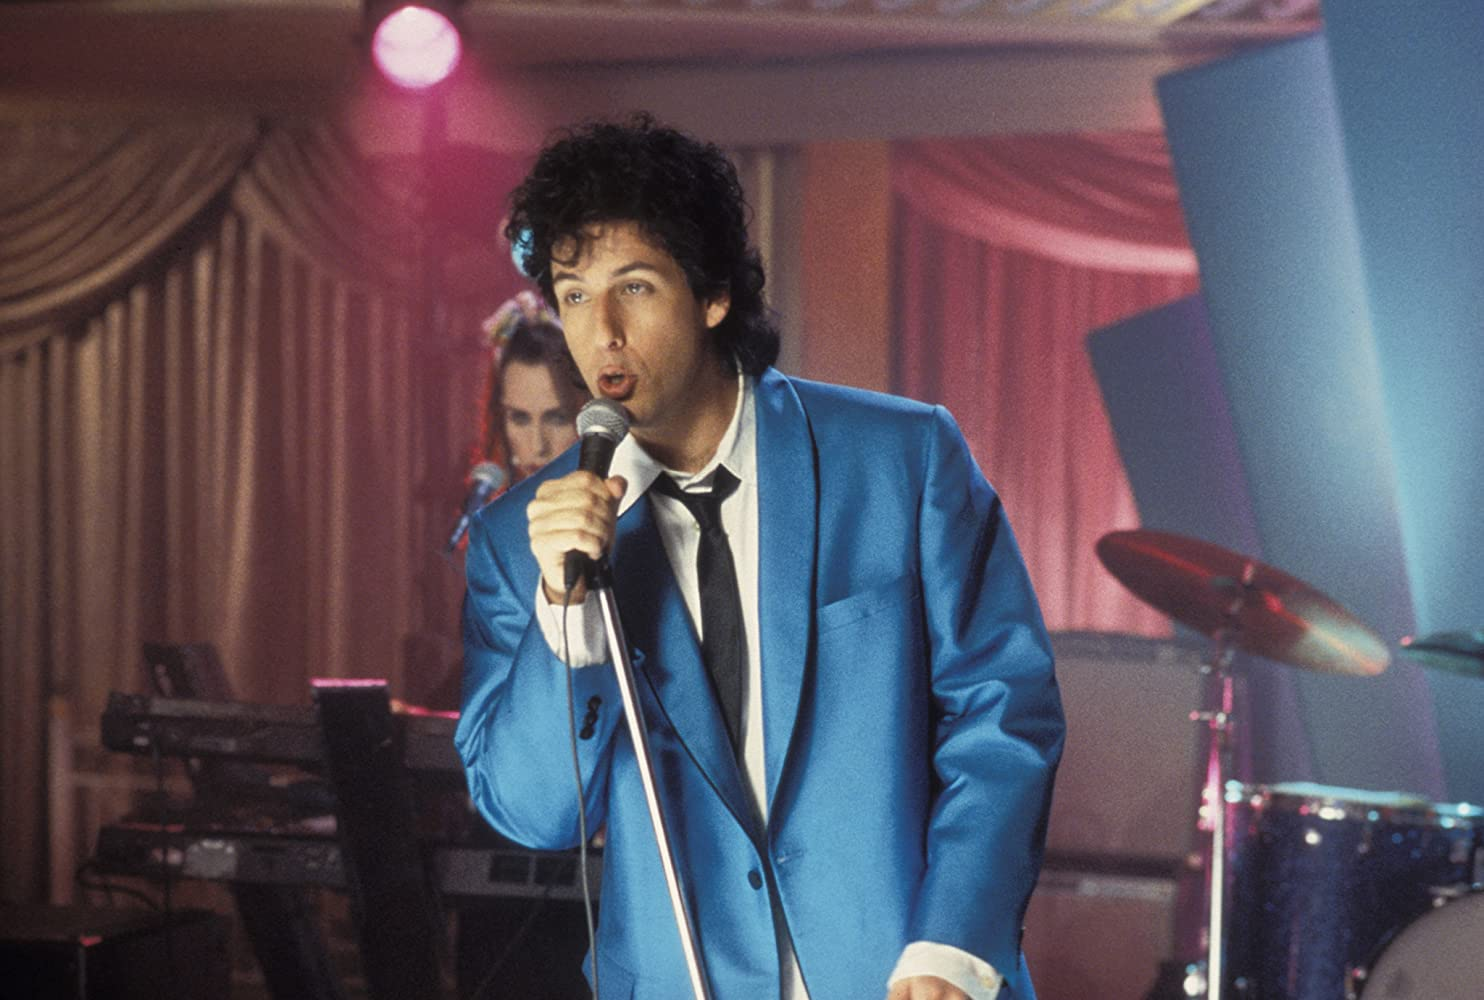 Adam Sandler in The Wedding Singer (1998)